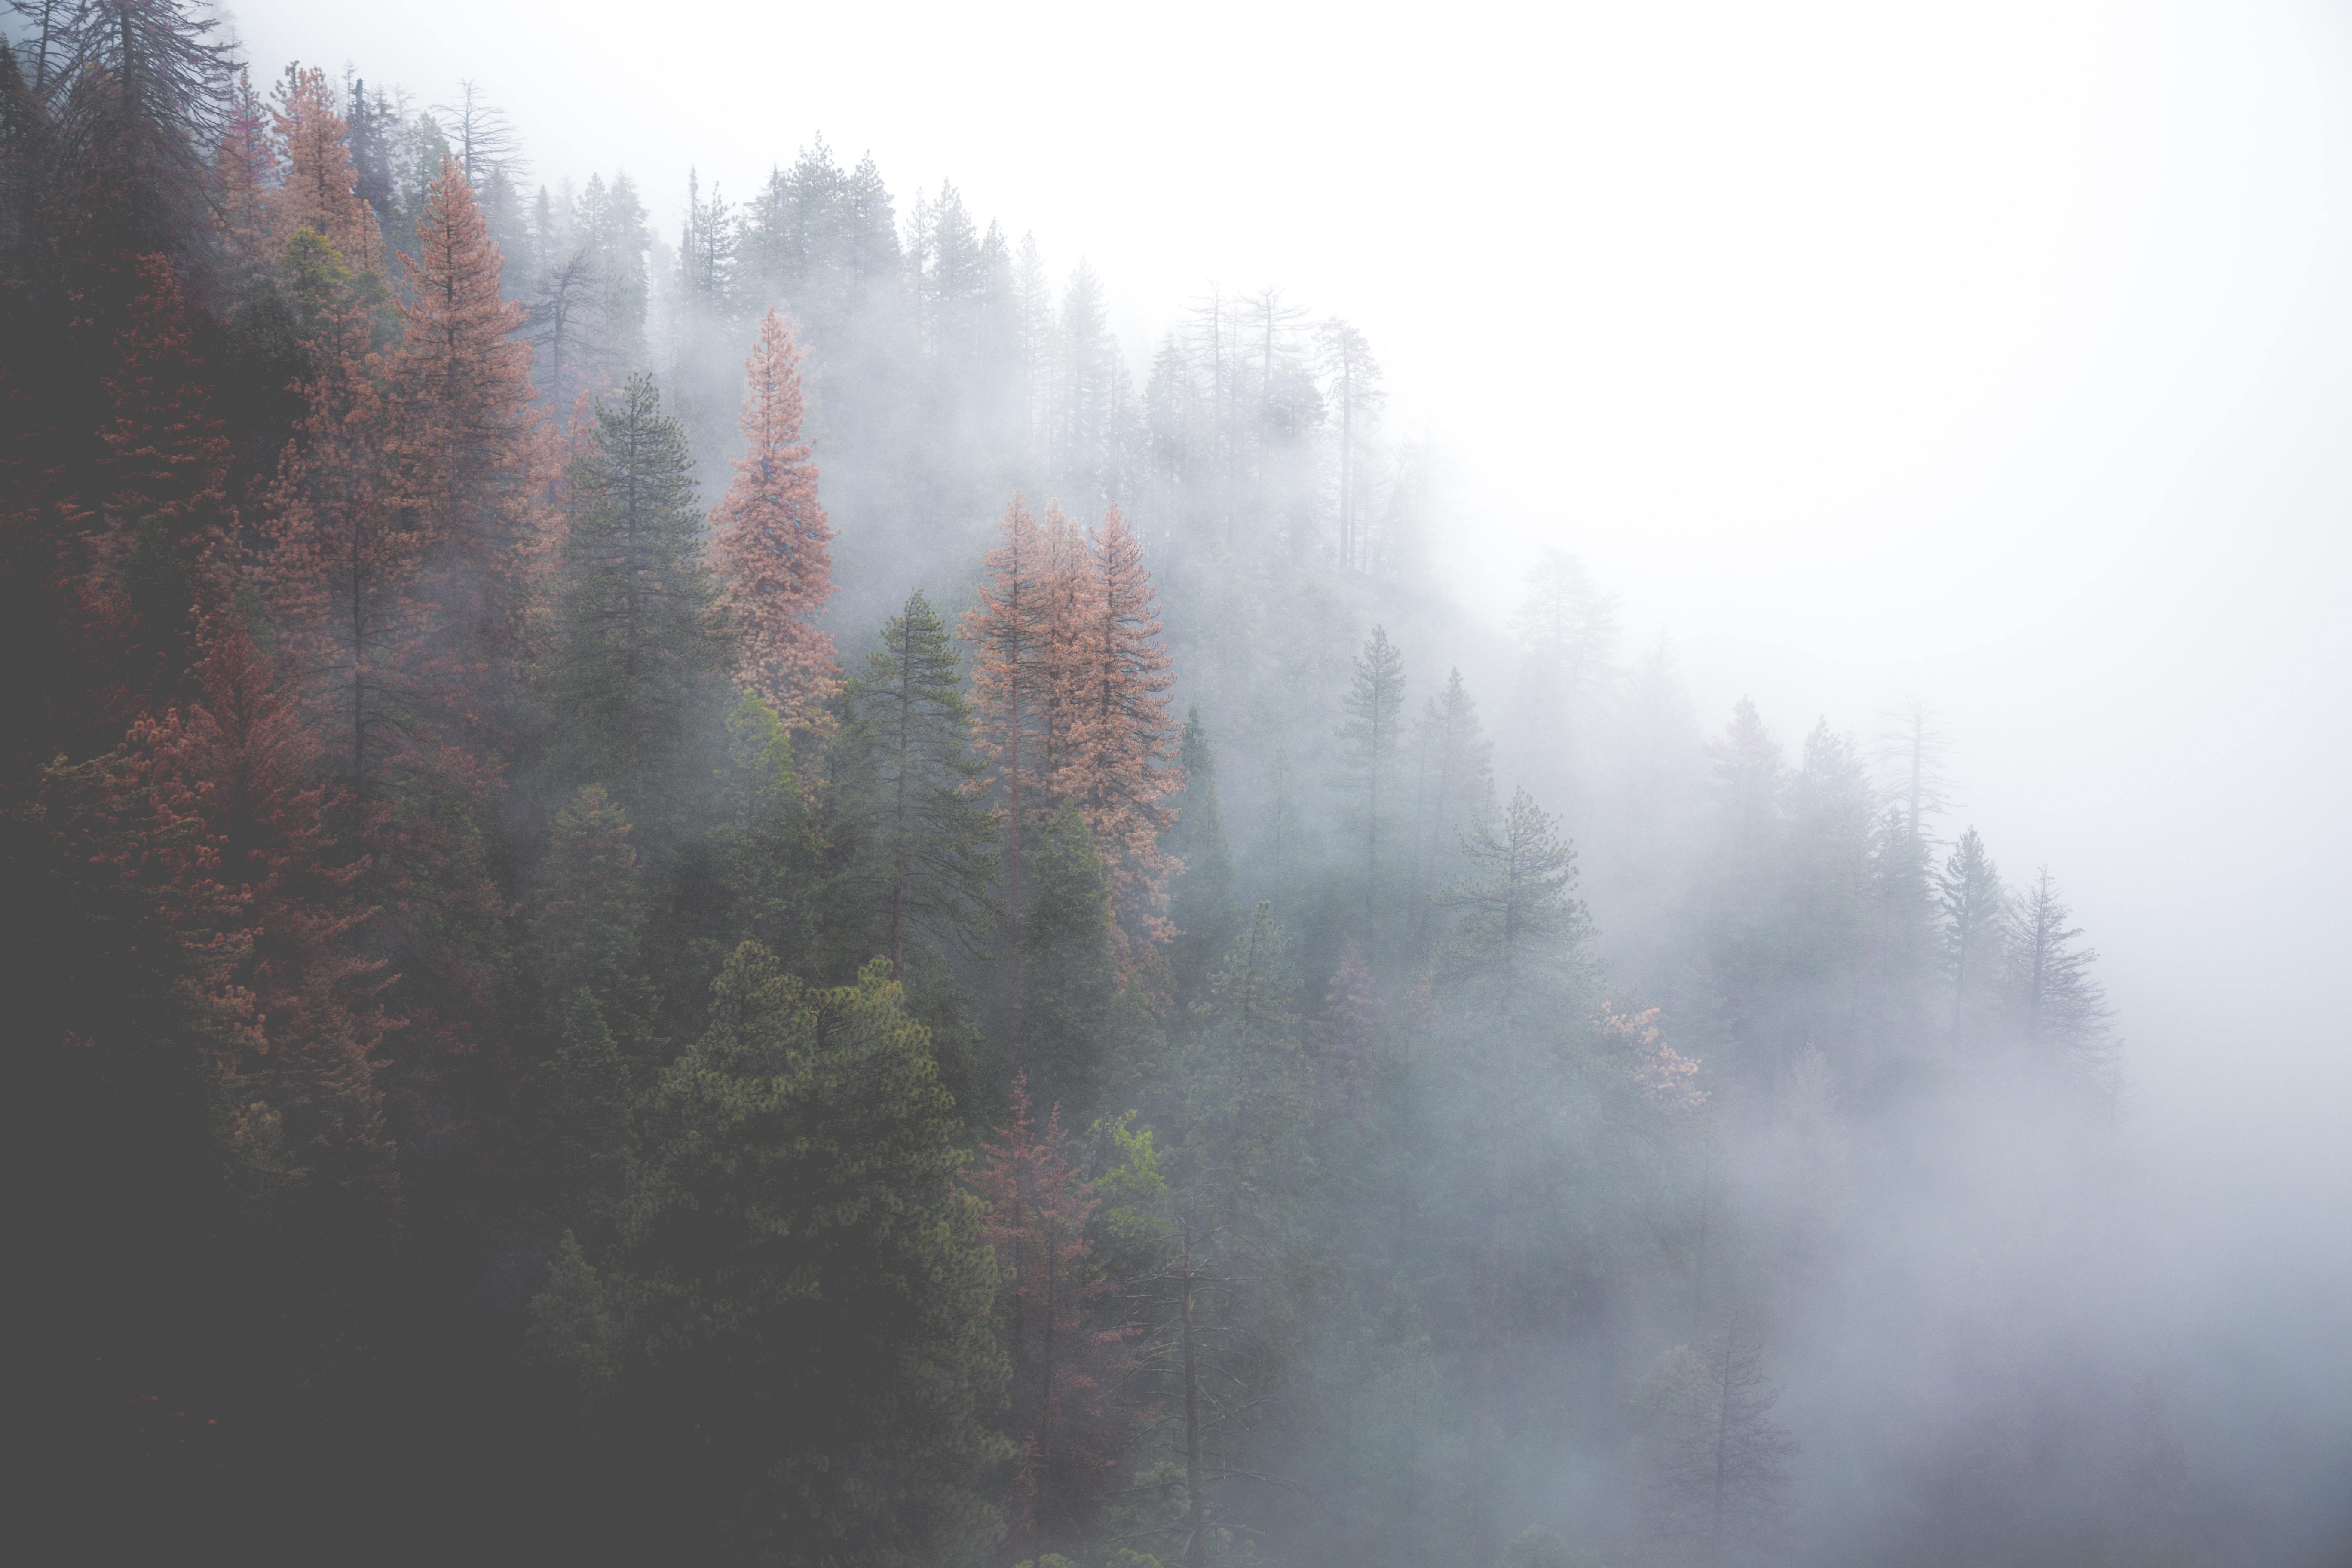 Brown and green trees in a forest enveloped in mist